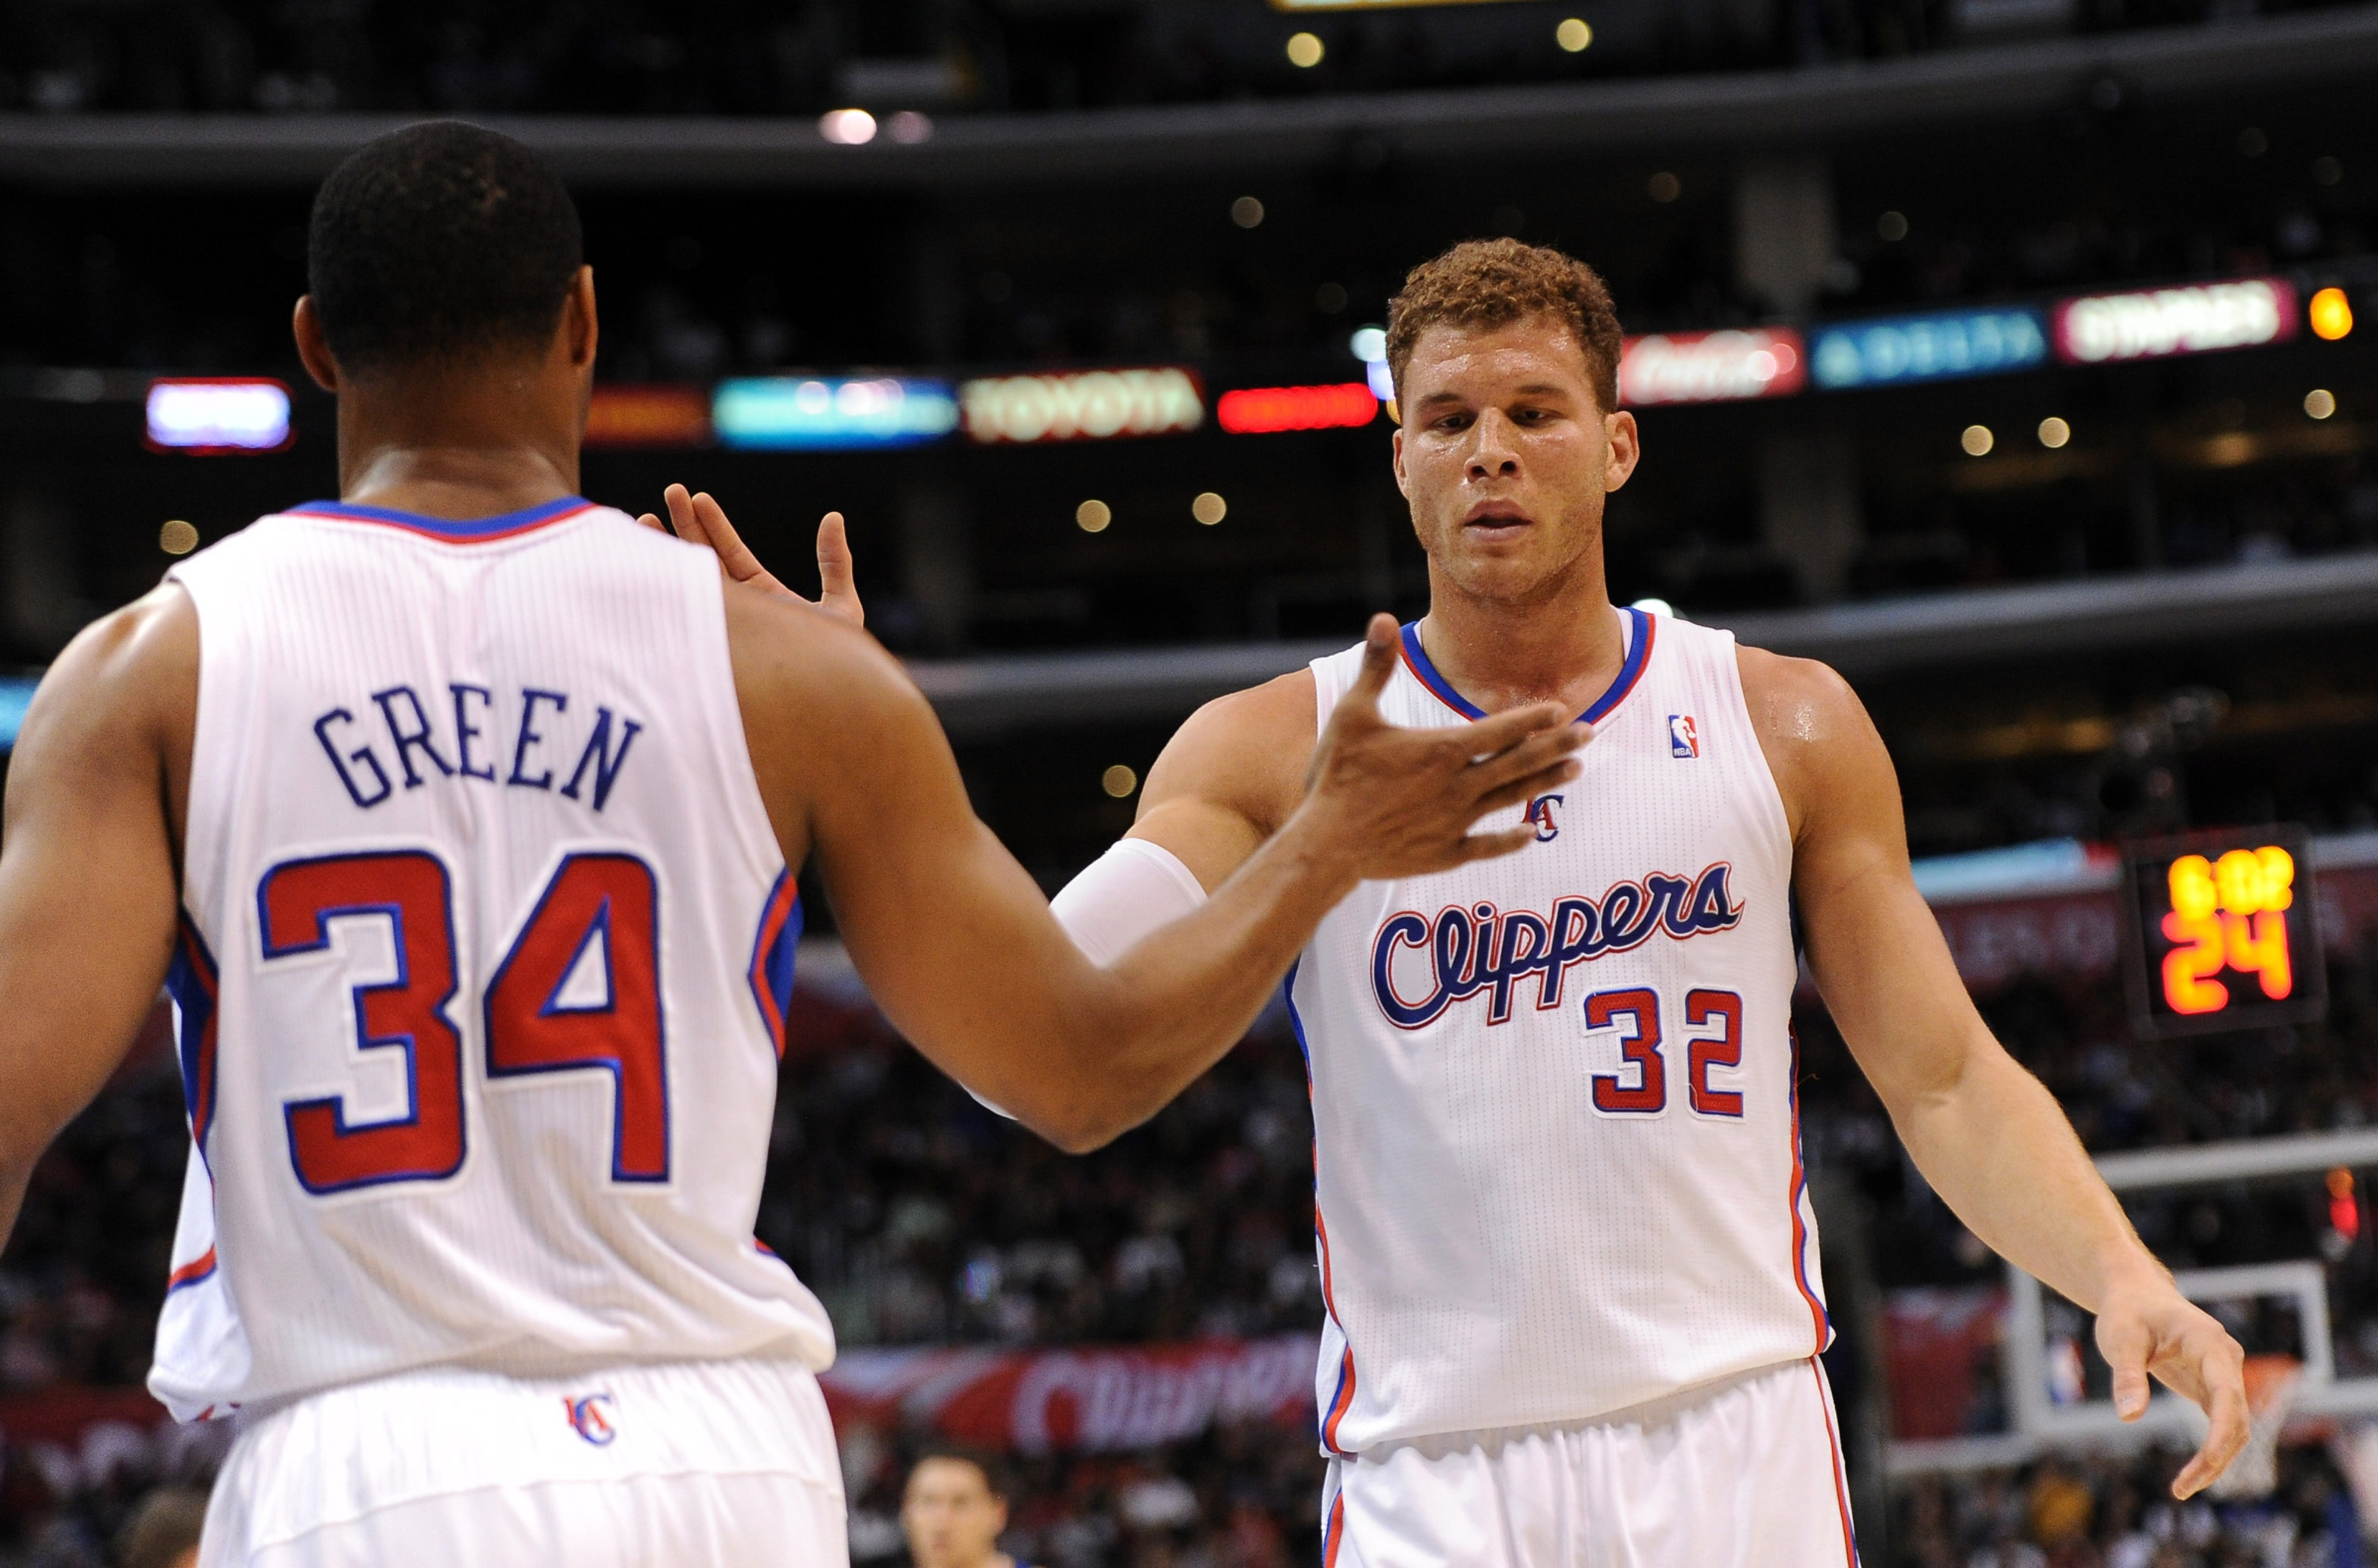 Willie Green and Blake Griffin